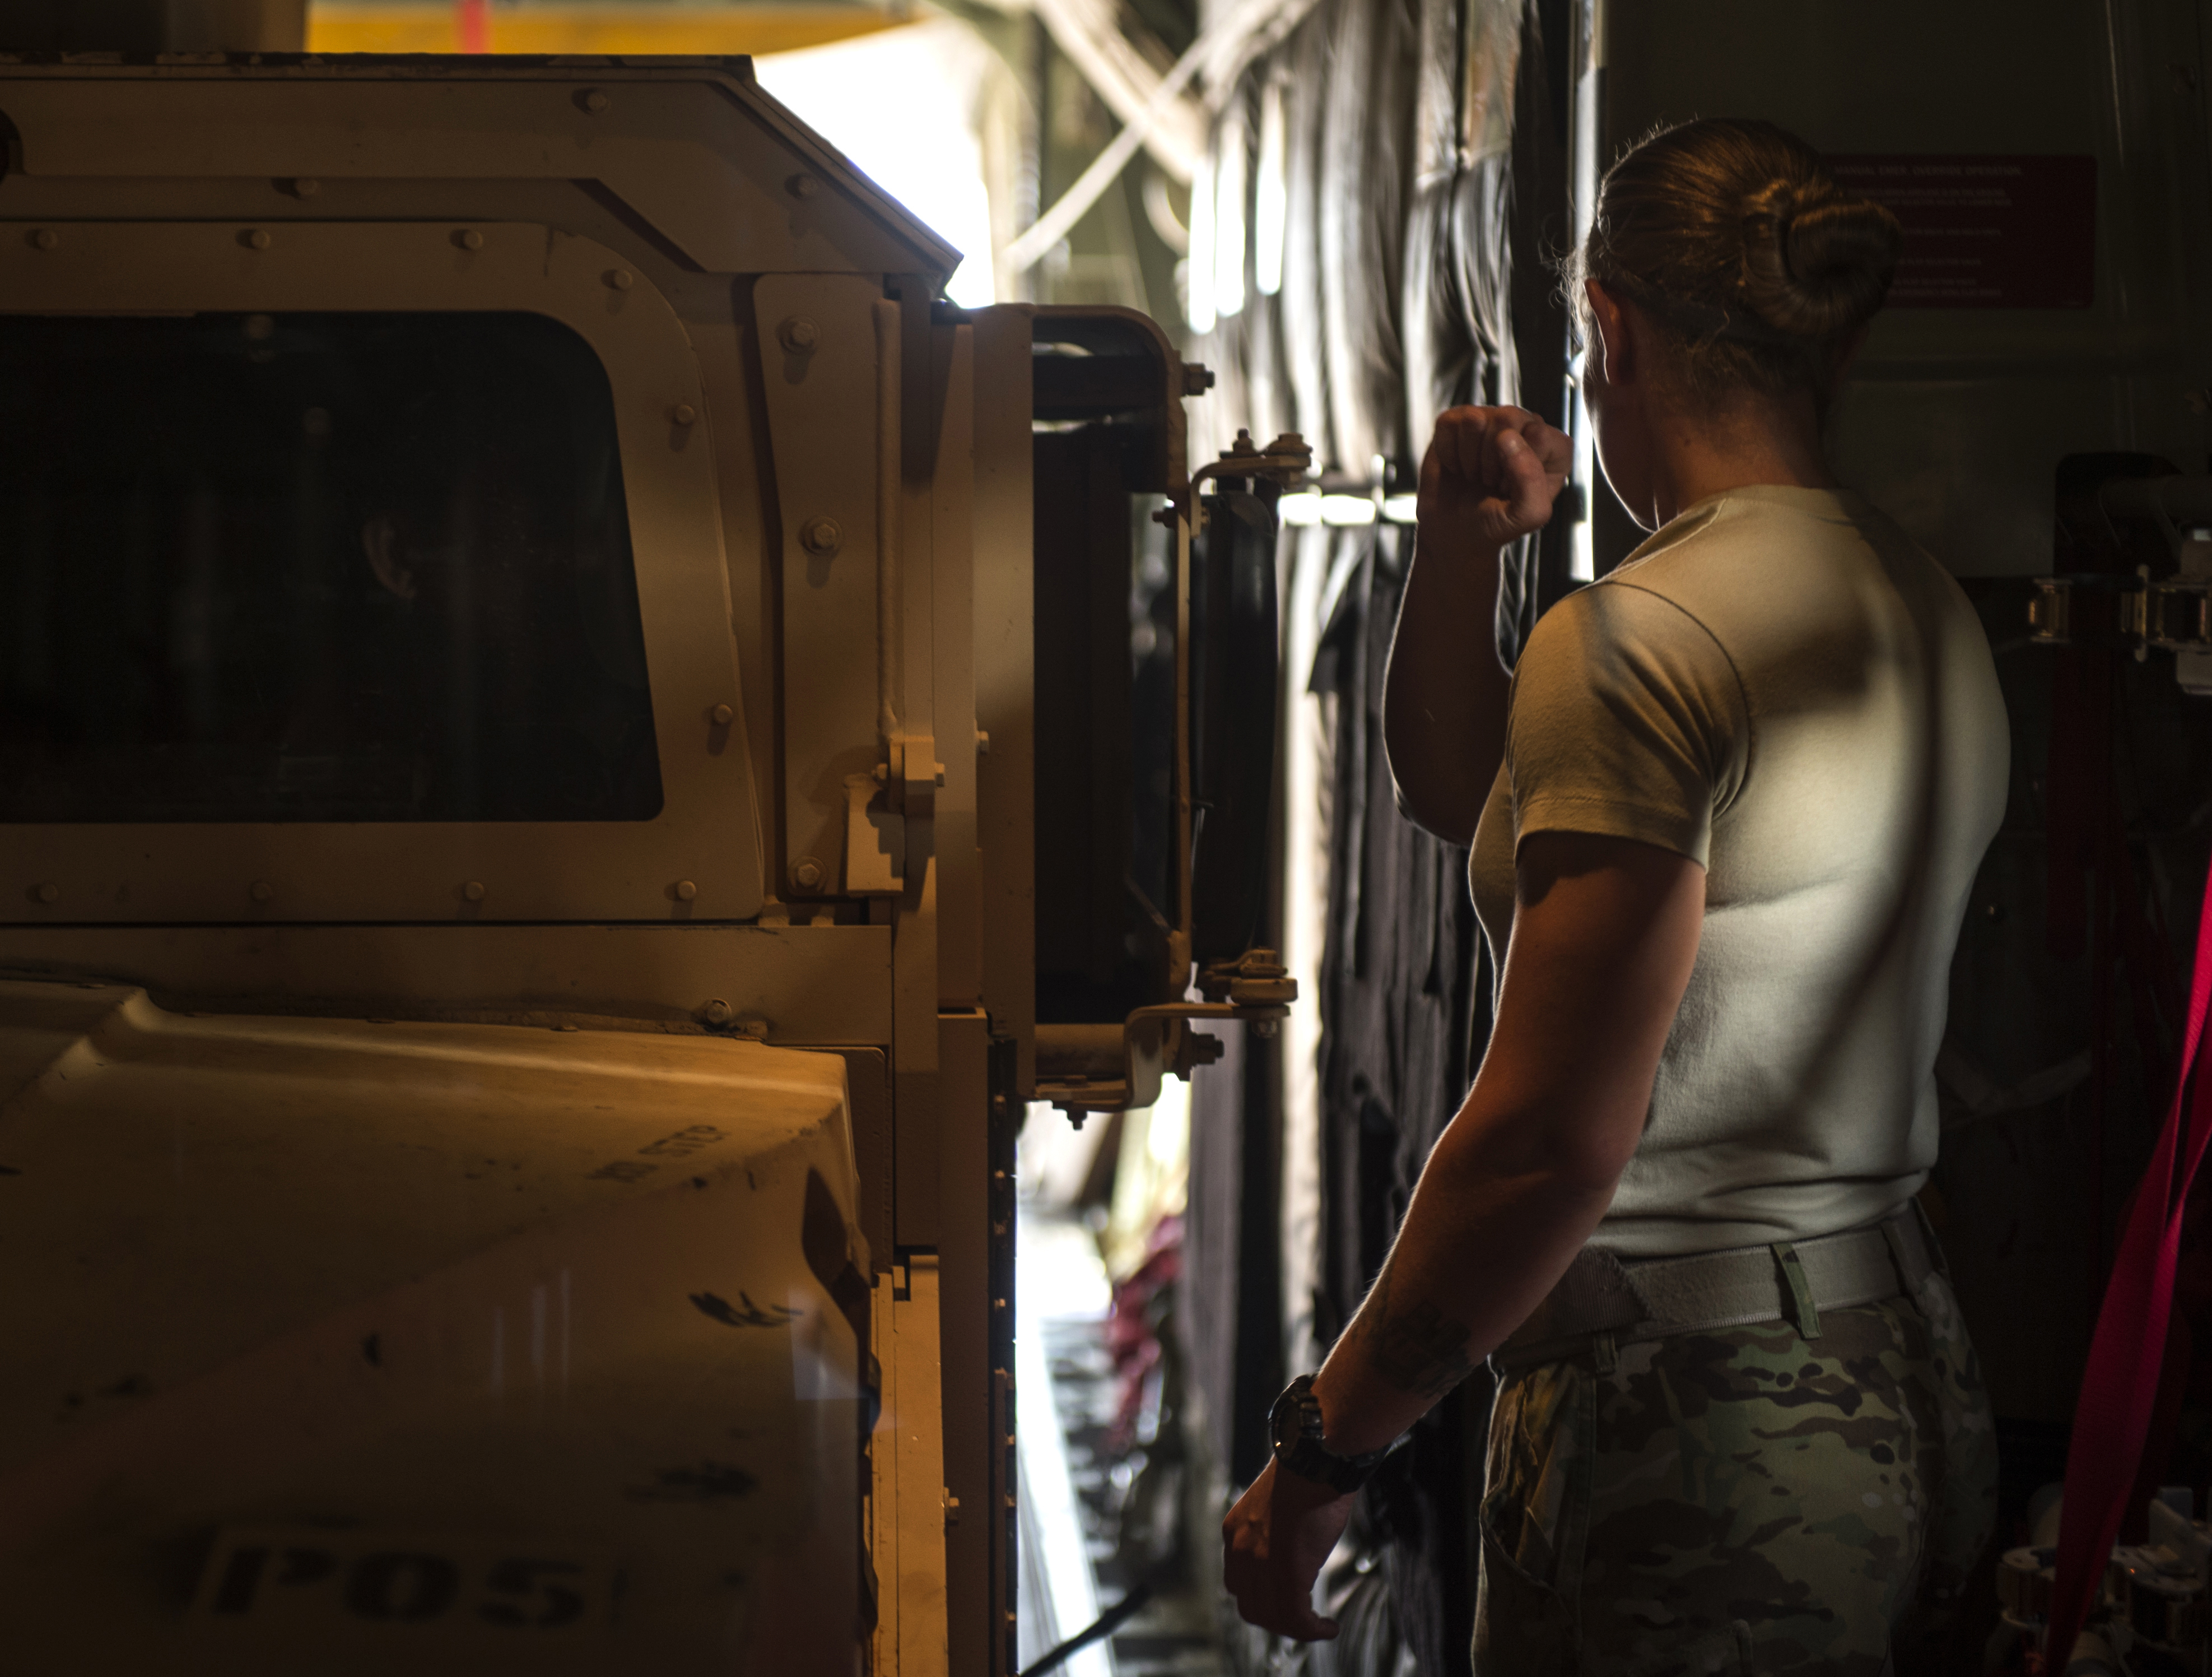 Staff Sgt. Whitney Woolverson, 75th Expeditionary Airlift Squadron loadmaster, directs a Charlie Co. 2-124 up-armored Humvee into a C-130J Super Hercules Nov. 24, 2015, at Camp Lemonnier, Djibouti. The vehicle and additional cargo were delivered to Task Force Seminole of the Florida Army National Guard, which is deployed to a forward operating location in support of the Combined Joint Task Force-Horn of Africa mission. (U.S. Air Force photo by Senior Airman Peter Thompson)